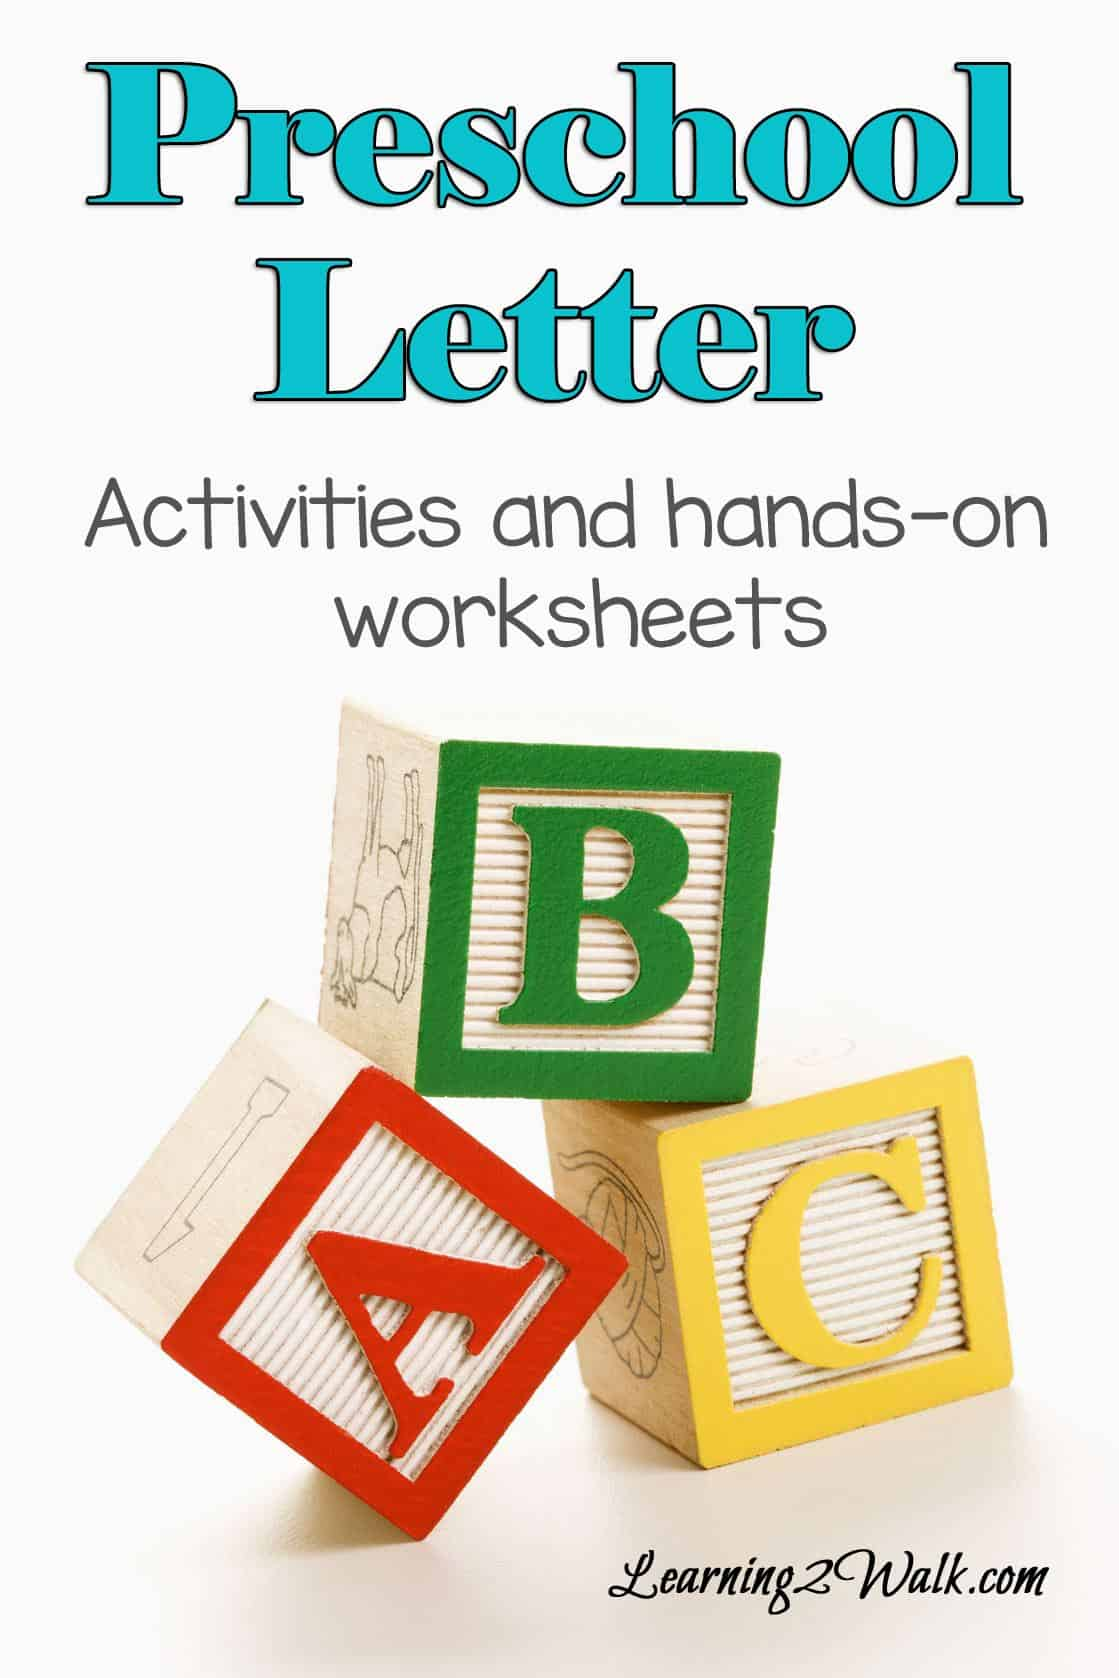 Free Preschool Letter Worksheets To Try With Your Kids